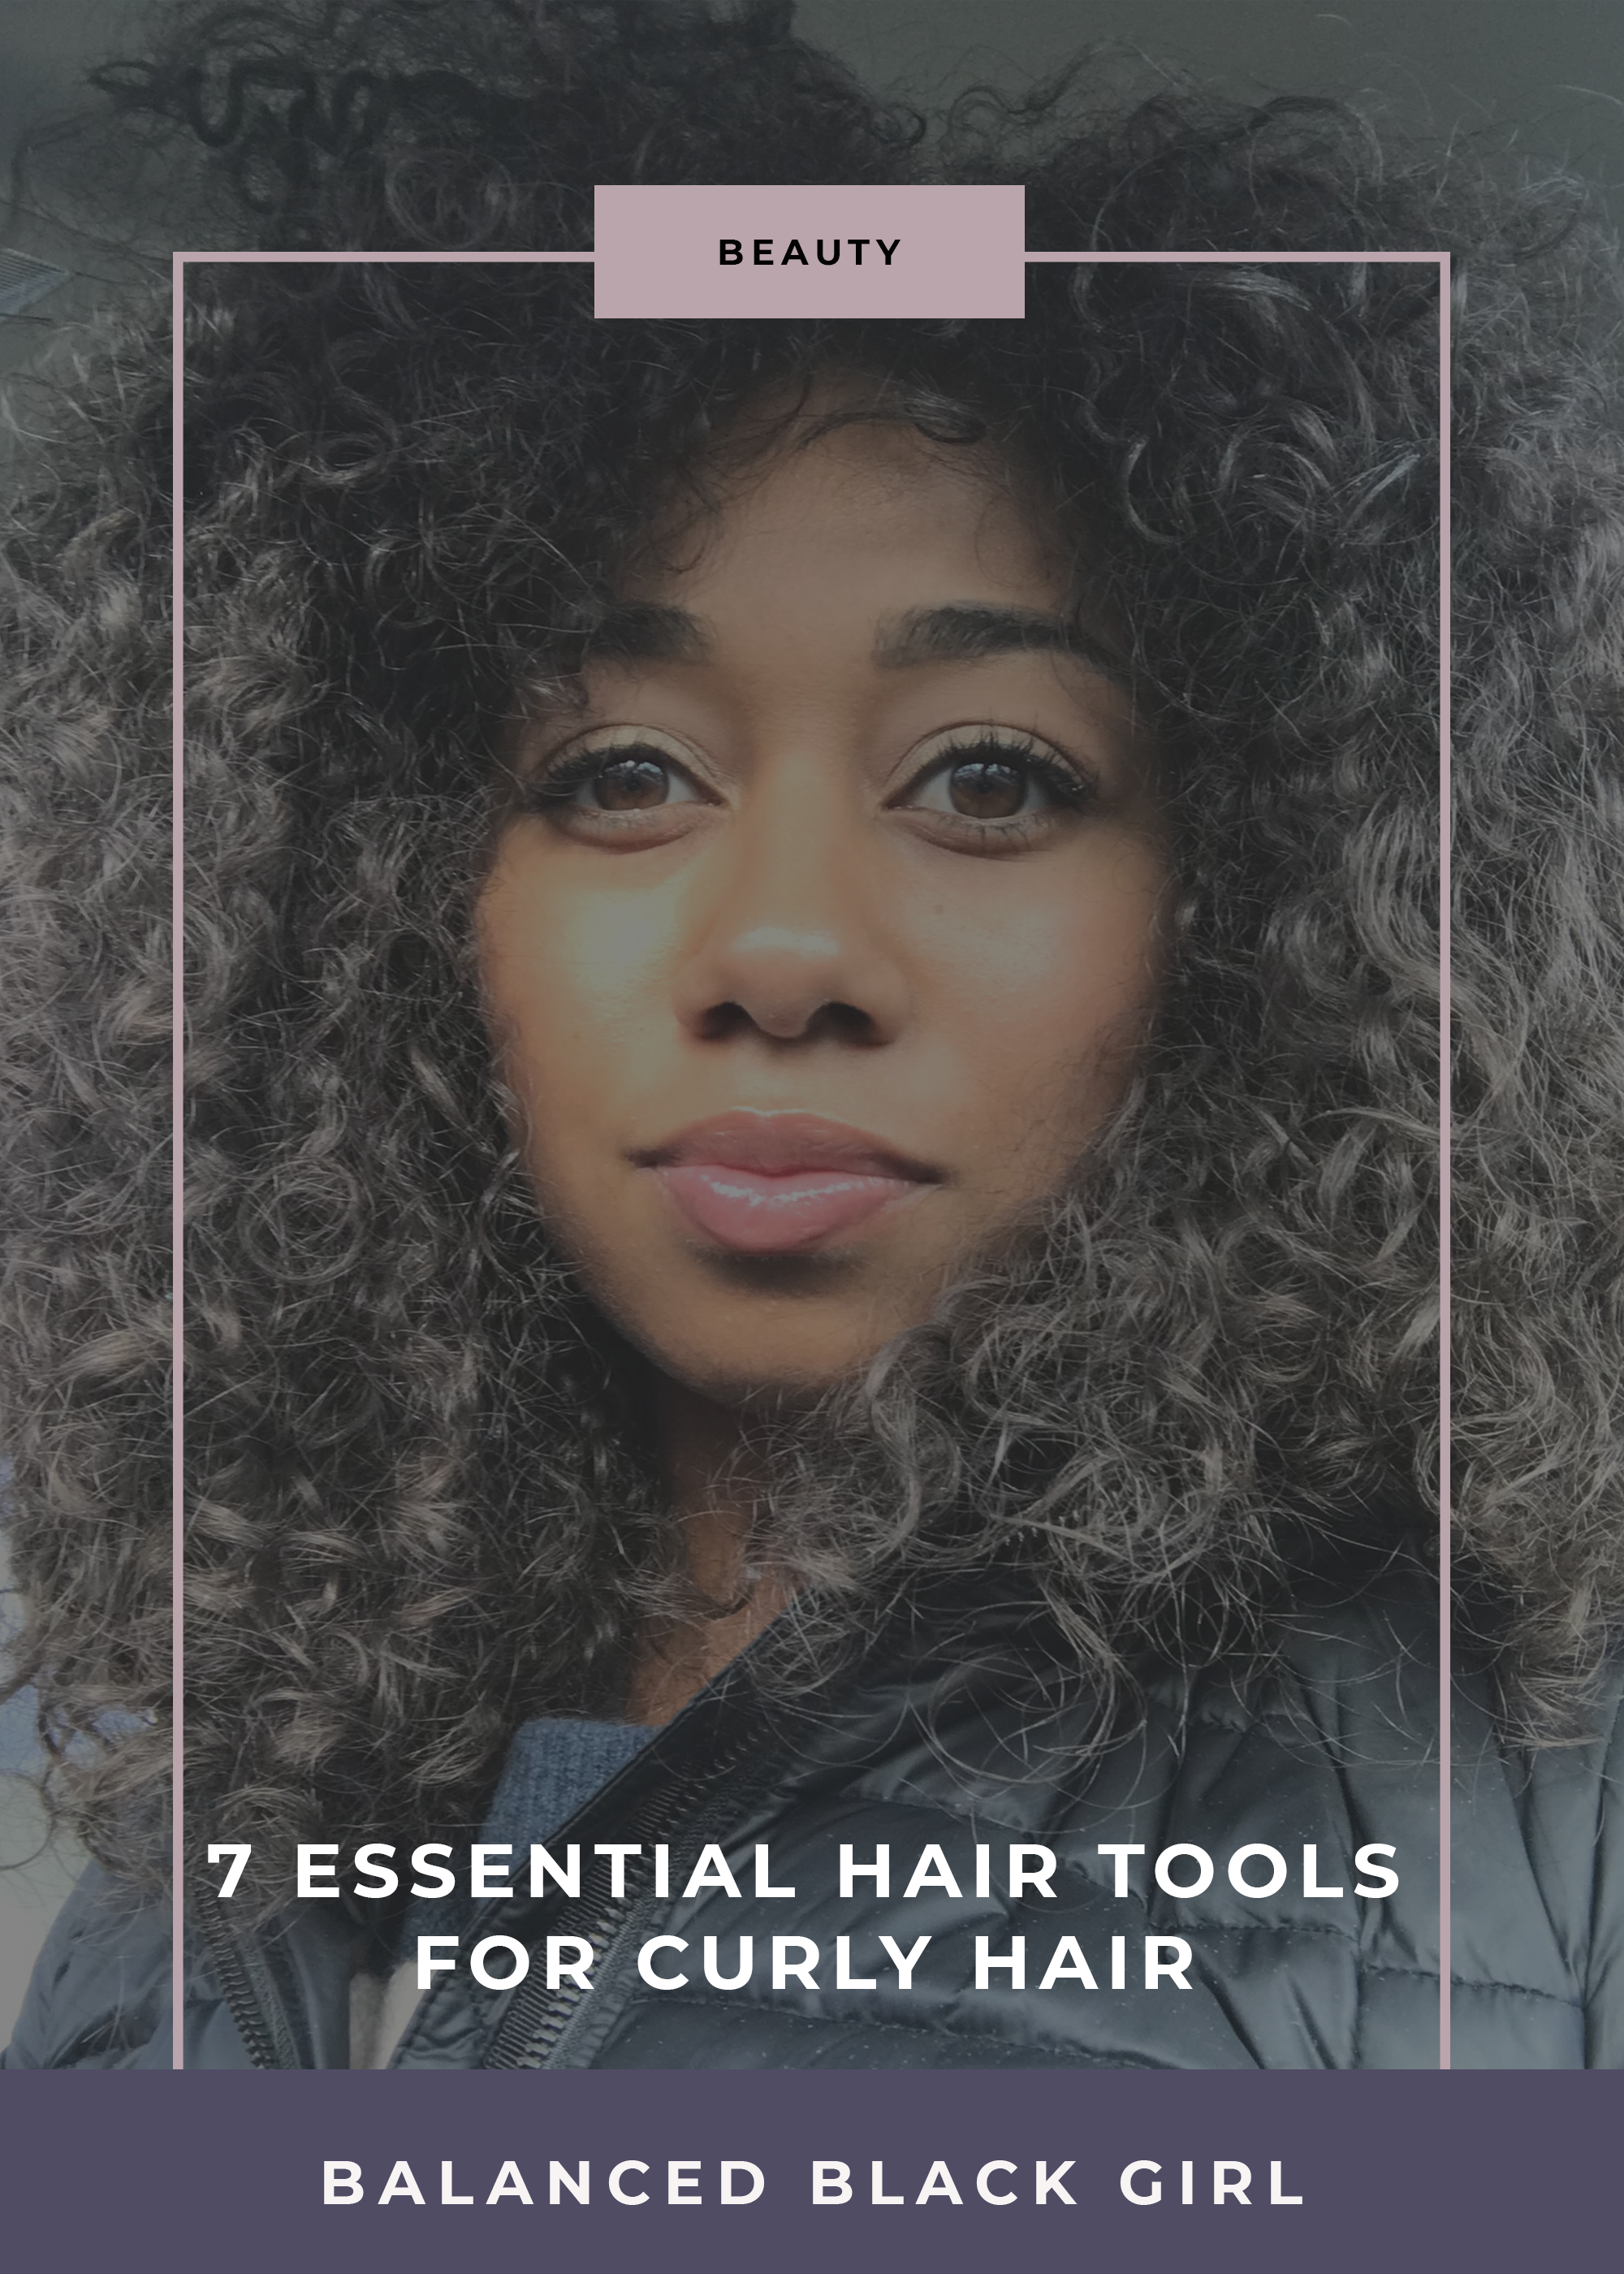 Ready to take care of your curly hair but don't know where to start? Check out this round-up of essential curly hair tools - all $20 or less! | balancedblackgirl.com